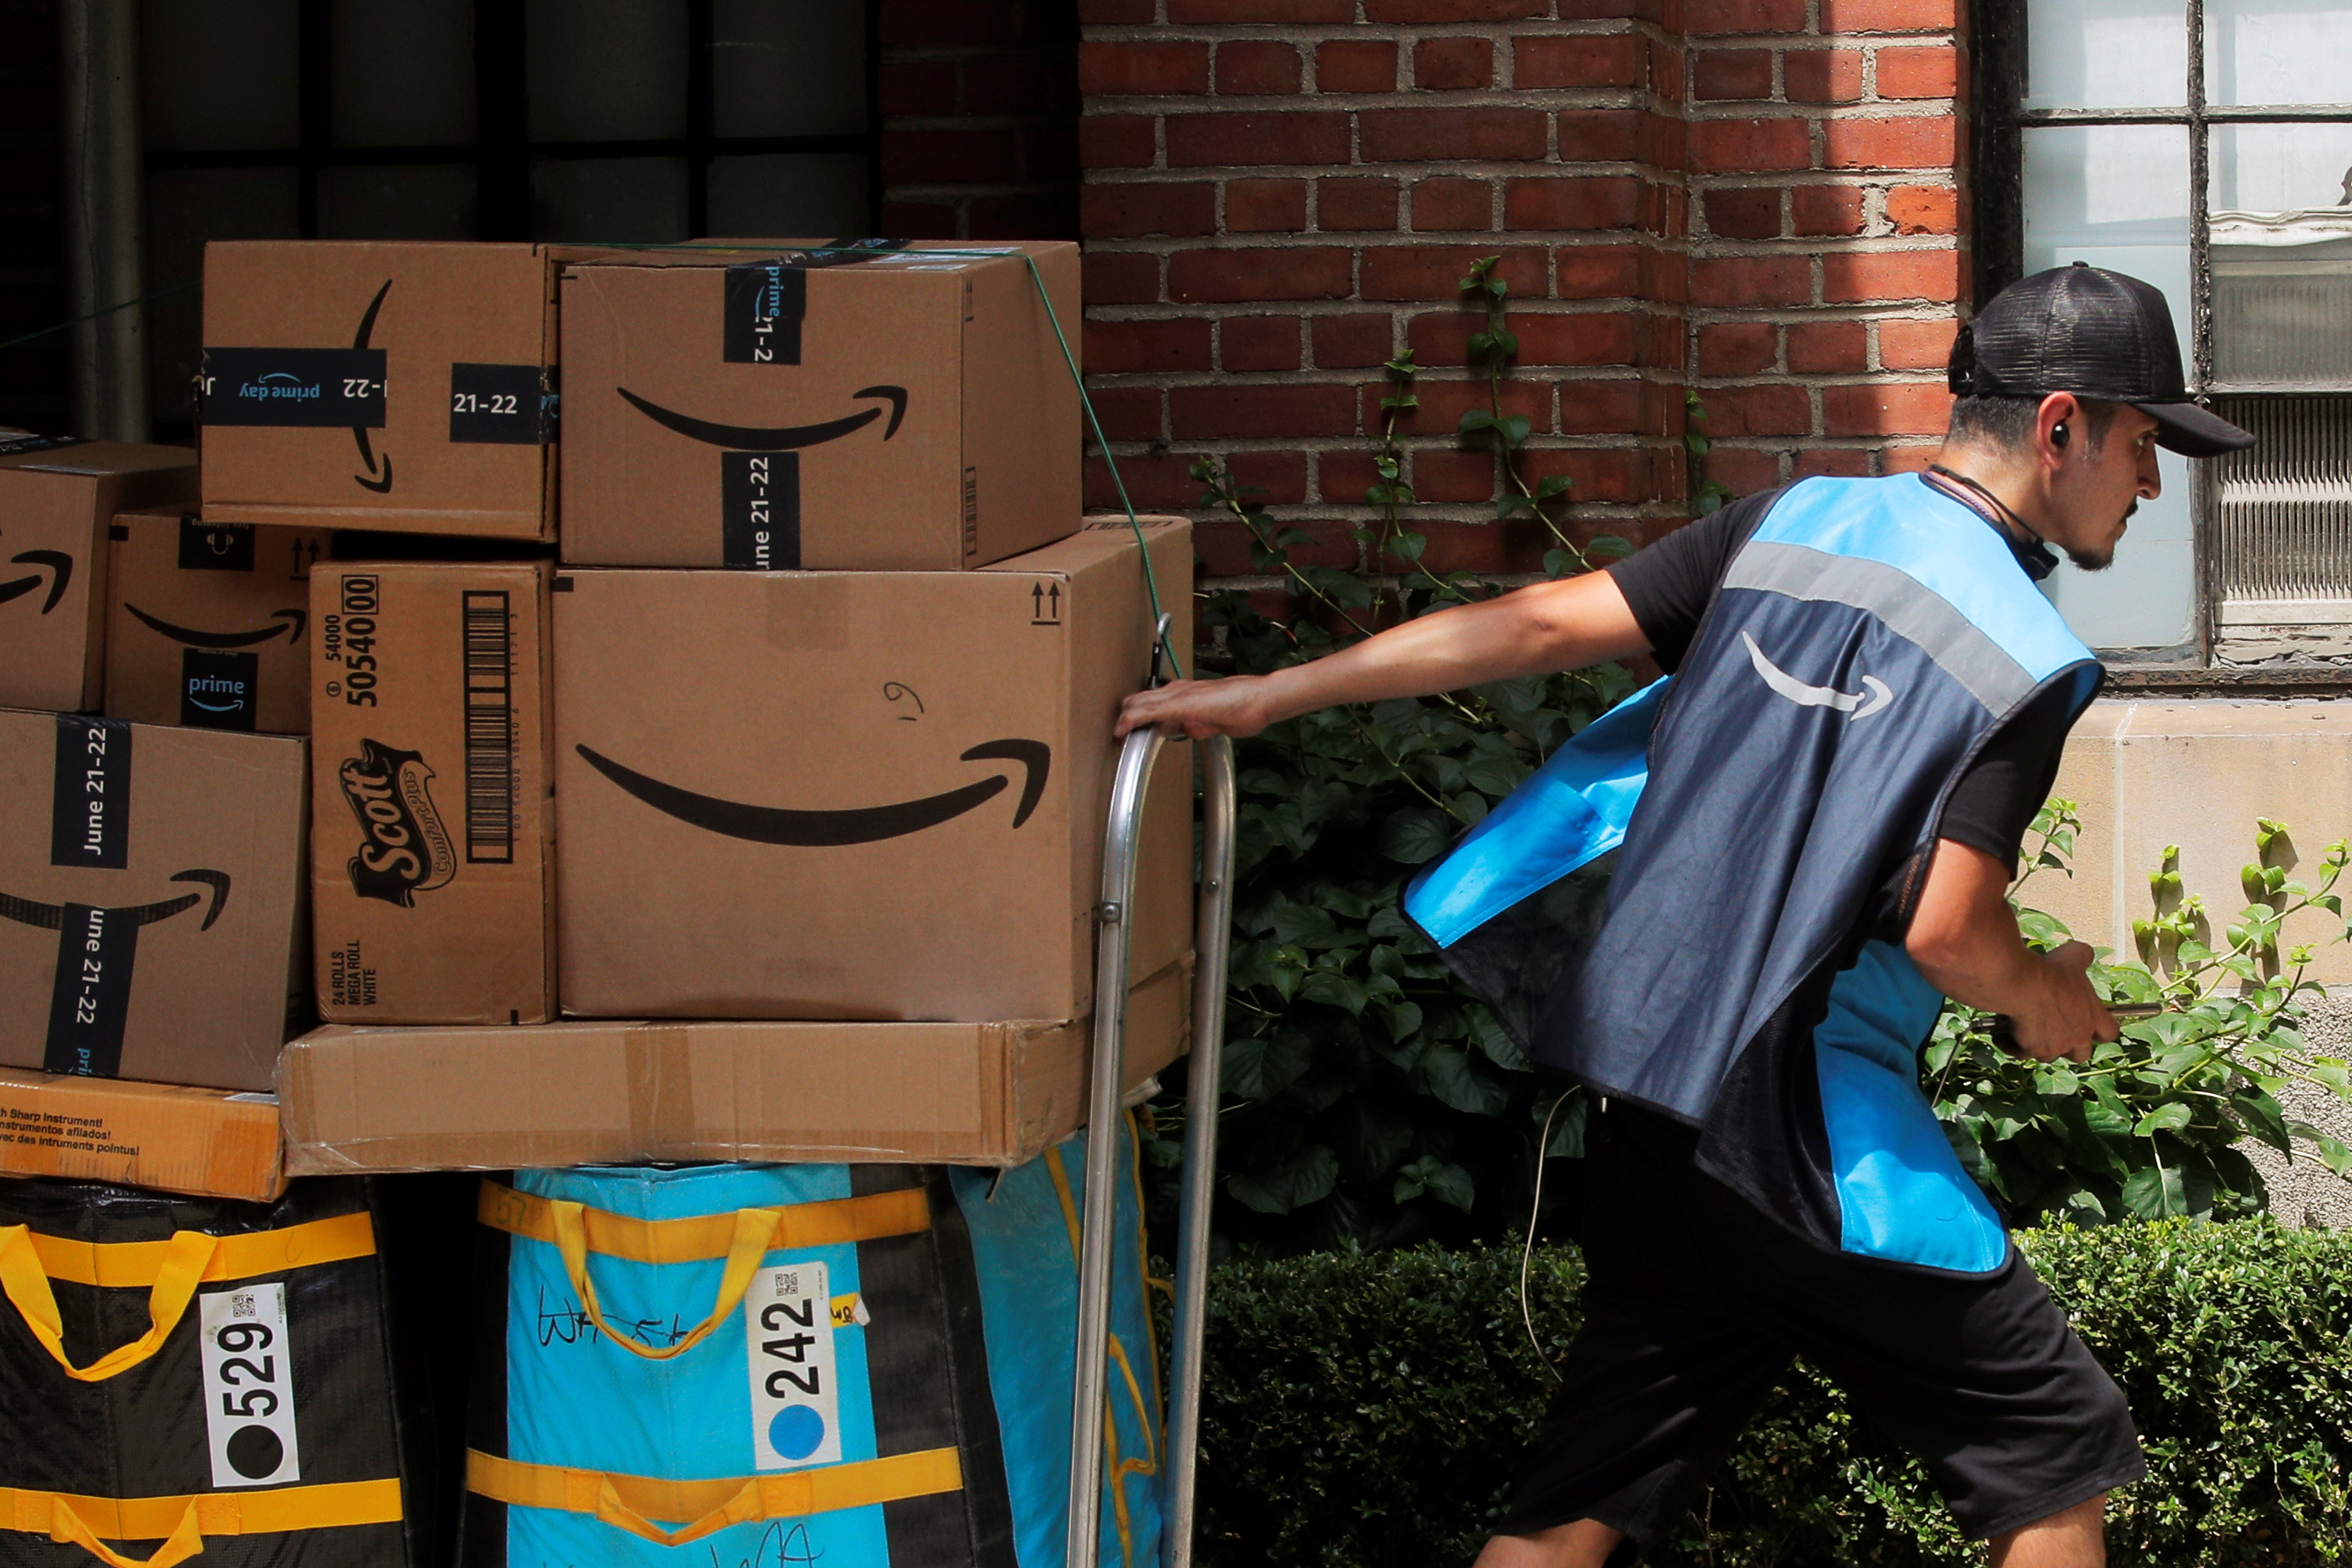 An Amazon delivery worker pulls a delivery cart full of packages during its annual Prime Day promotion in New York City, U.S., June 21, 2021.  REUTERS/Brendan McDermid